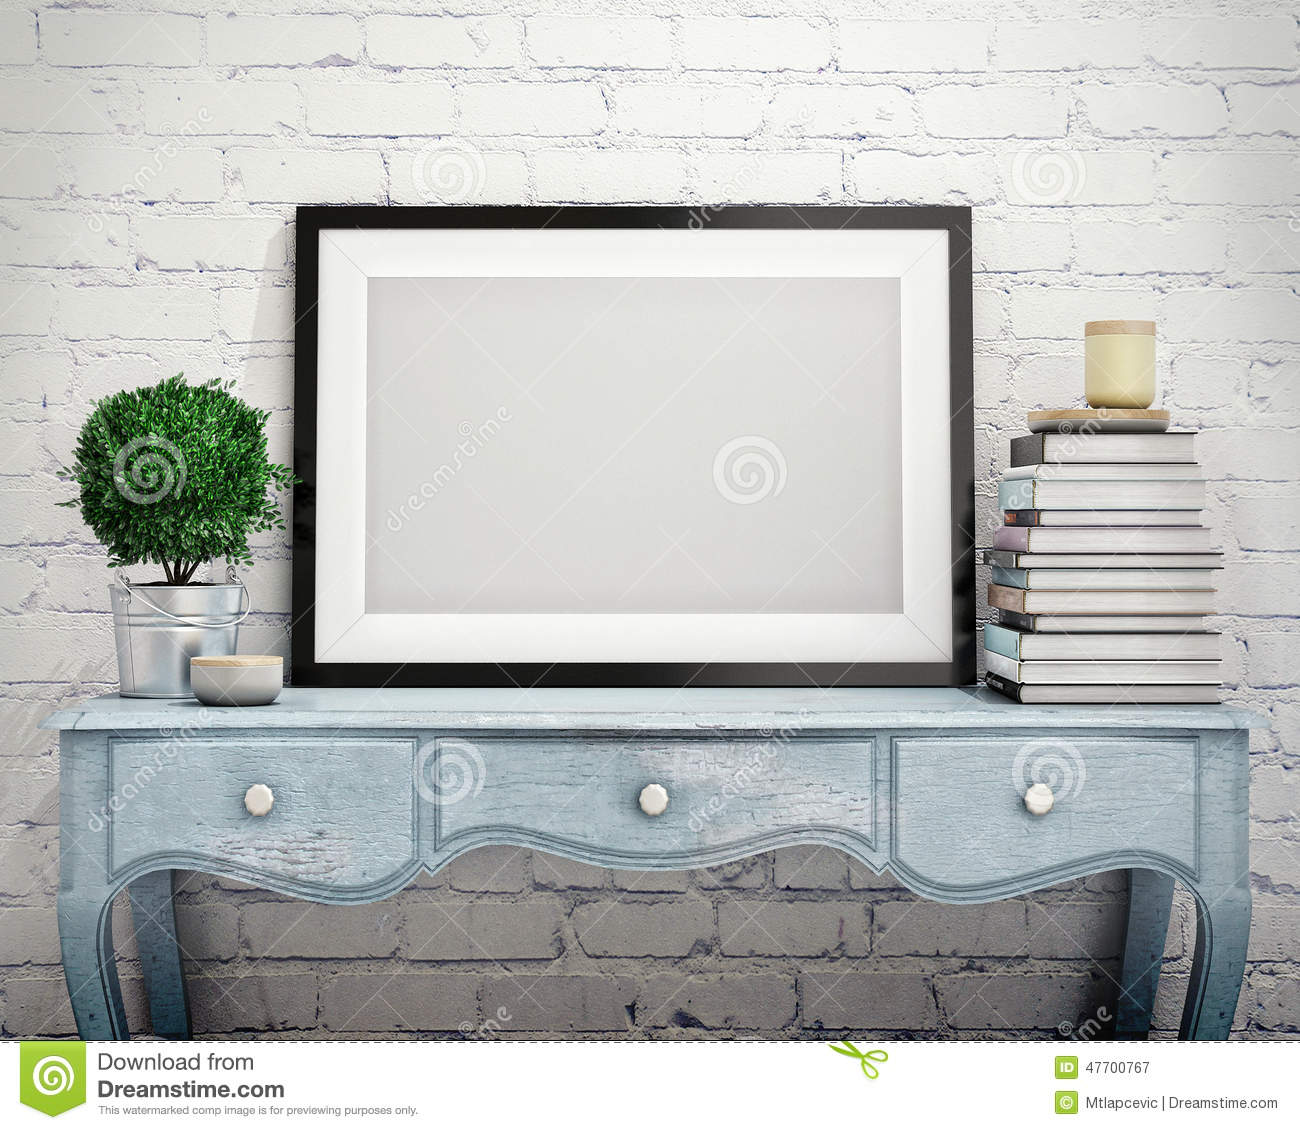 Mock Up Poster Frame On Vintage Chest Of Drawers, Interior Stock ...